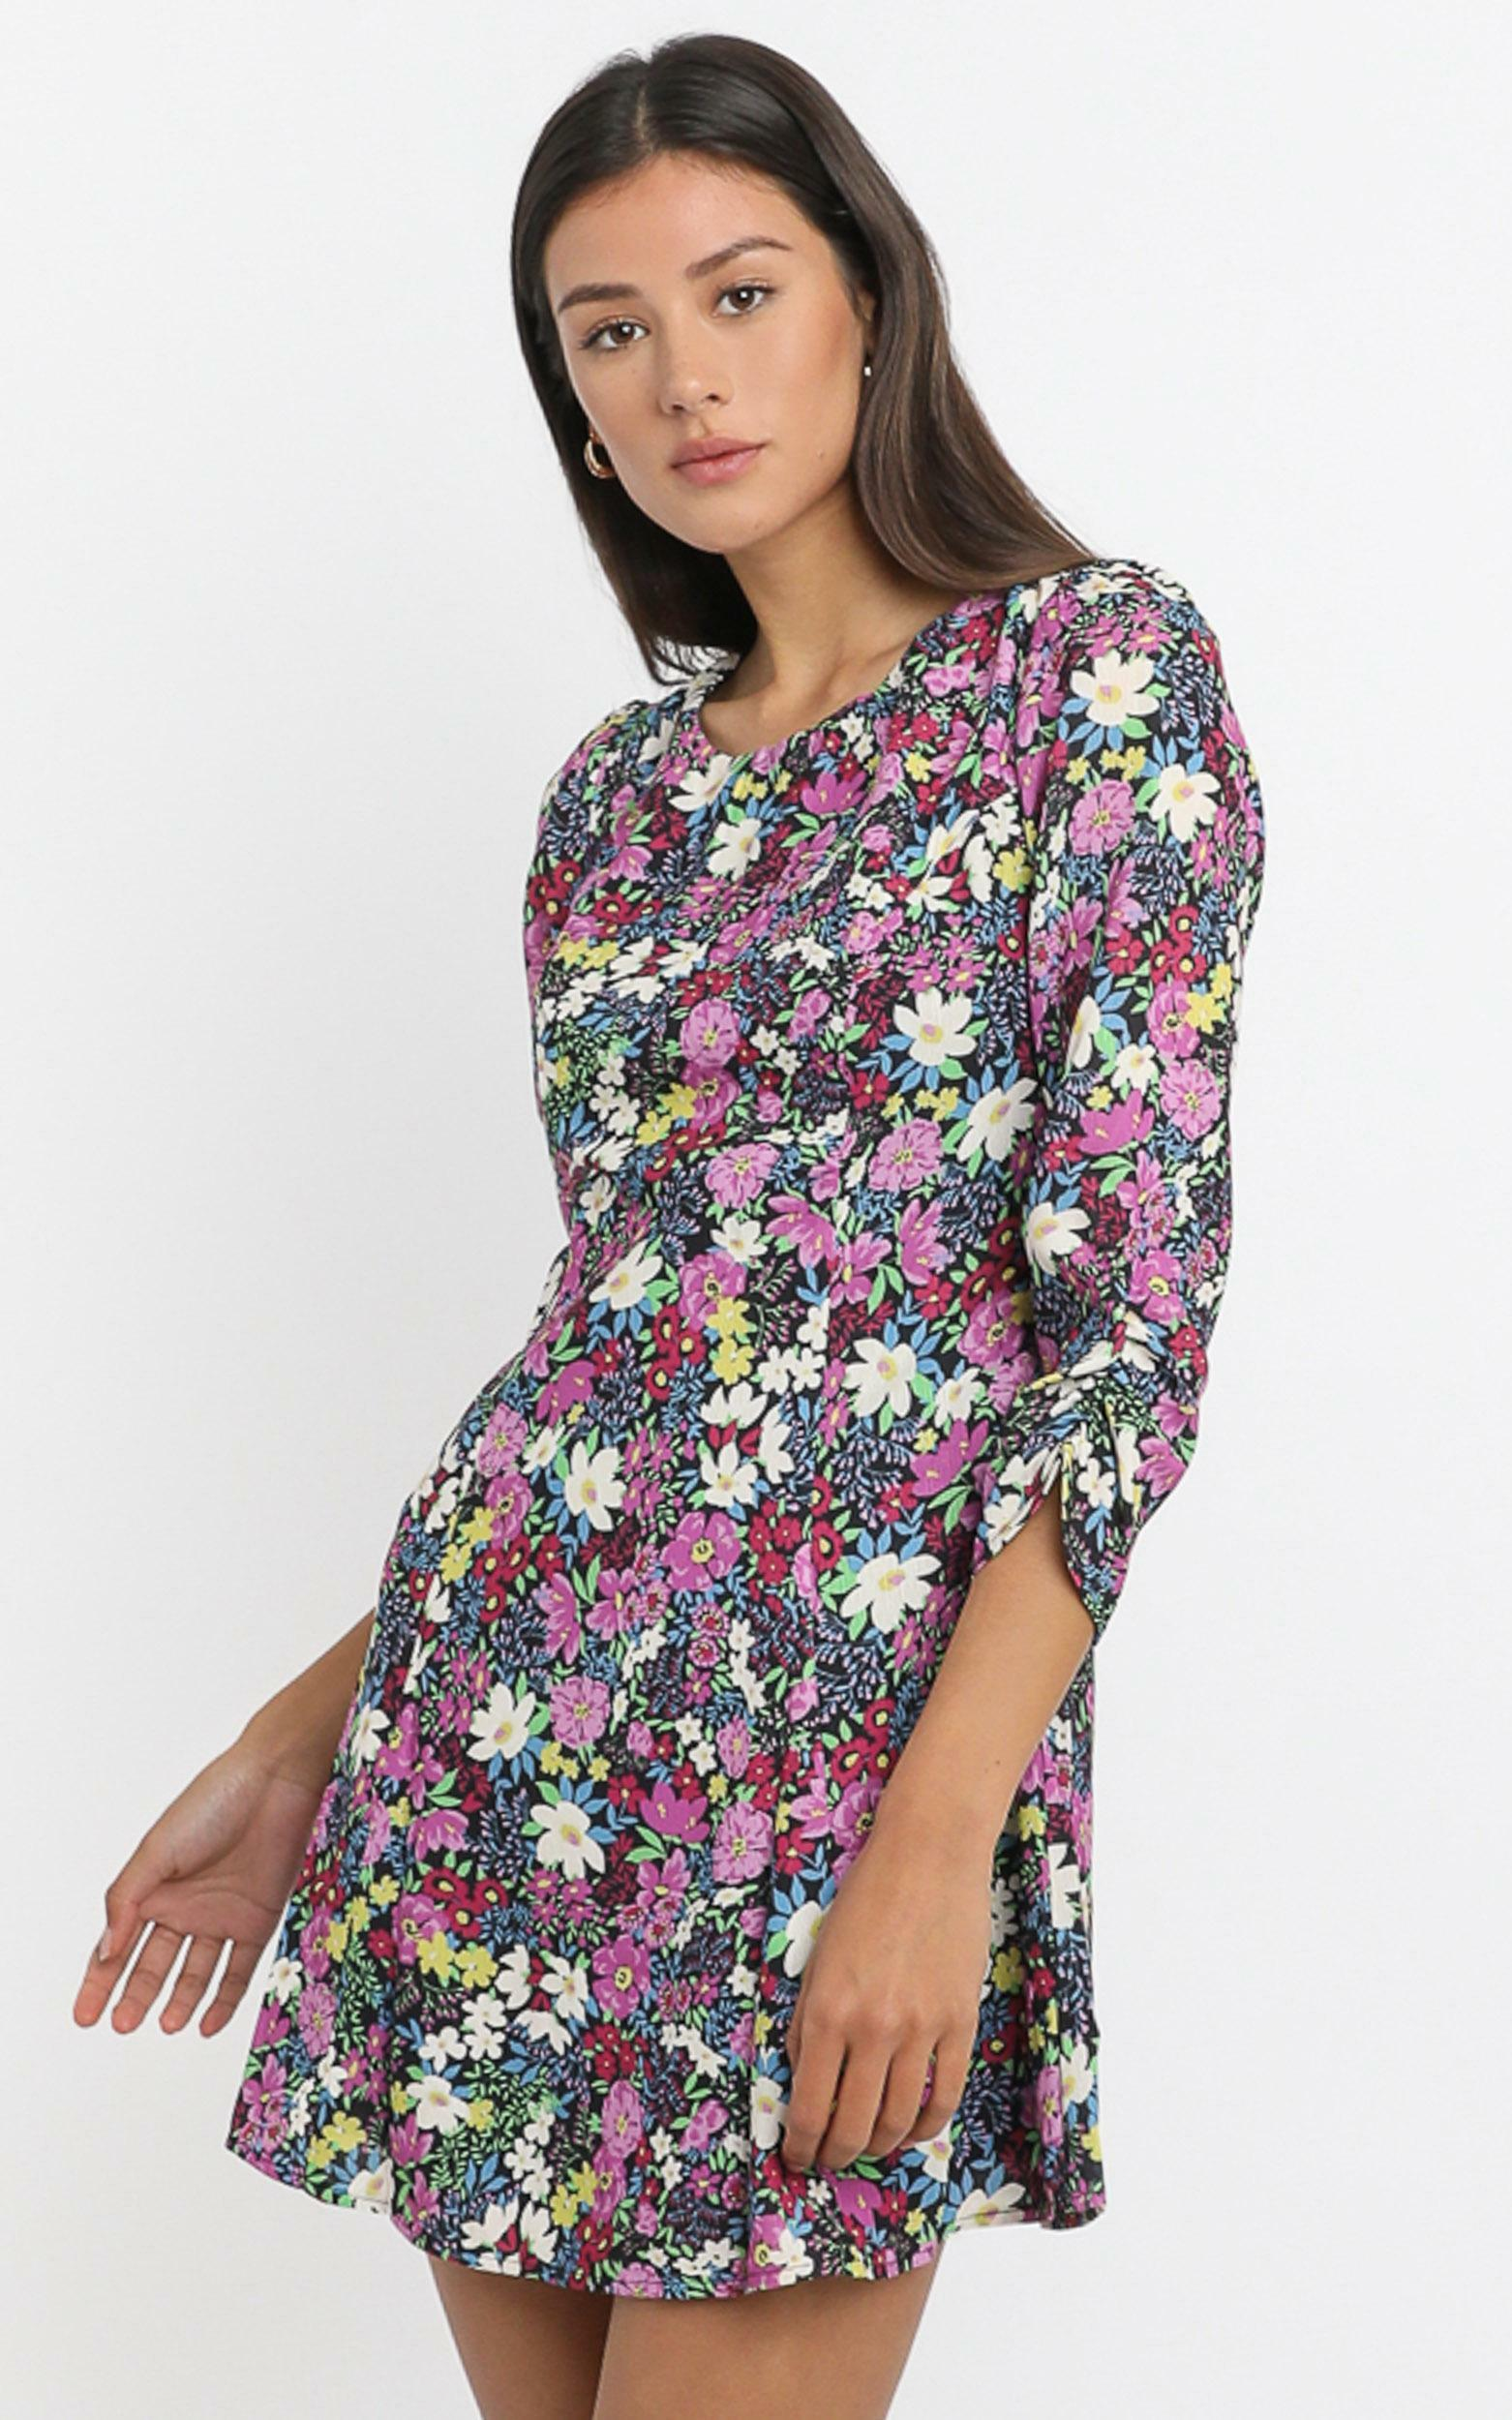 Nessi Mini Dress in forest floral - 6 (XS), Purple, hi-res image number null